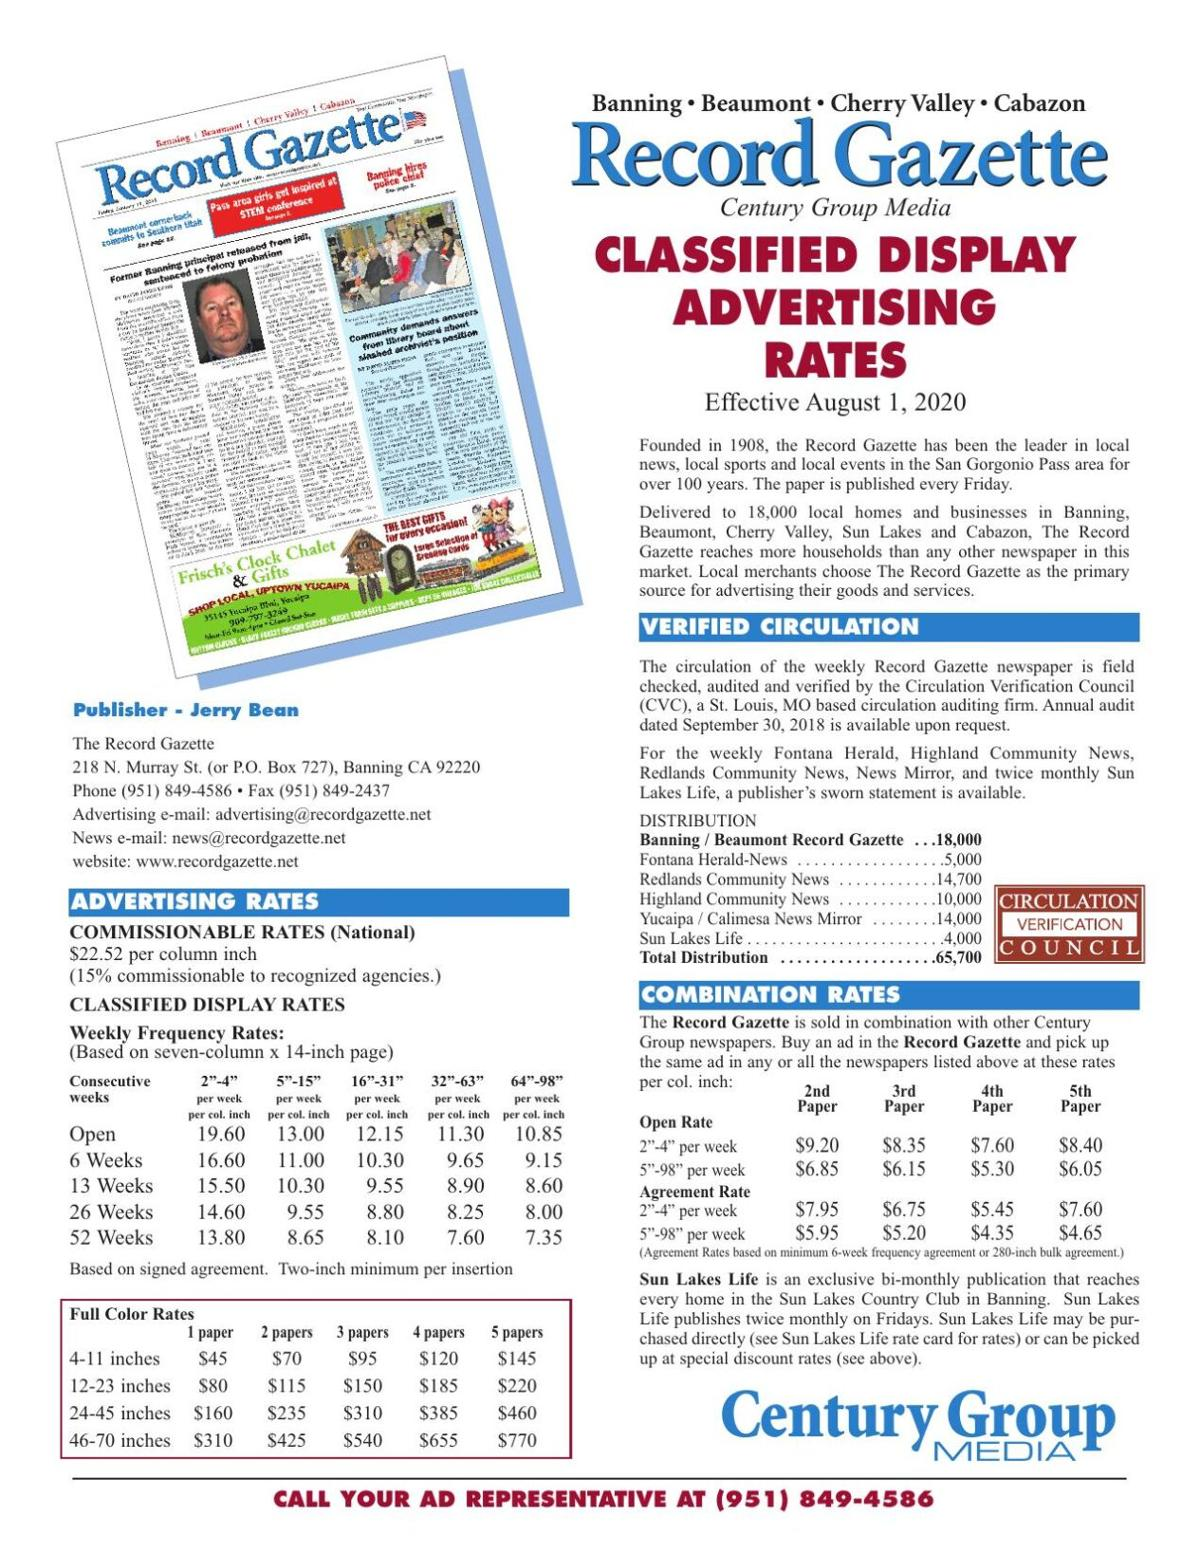 Record Gazette - Classified Display Rates